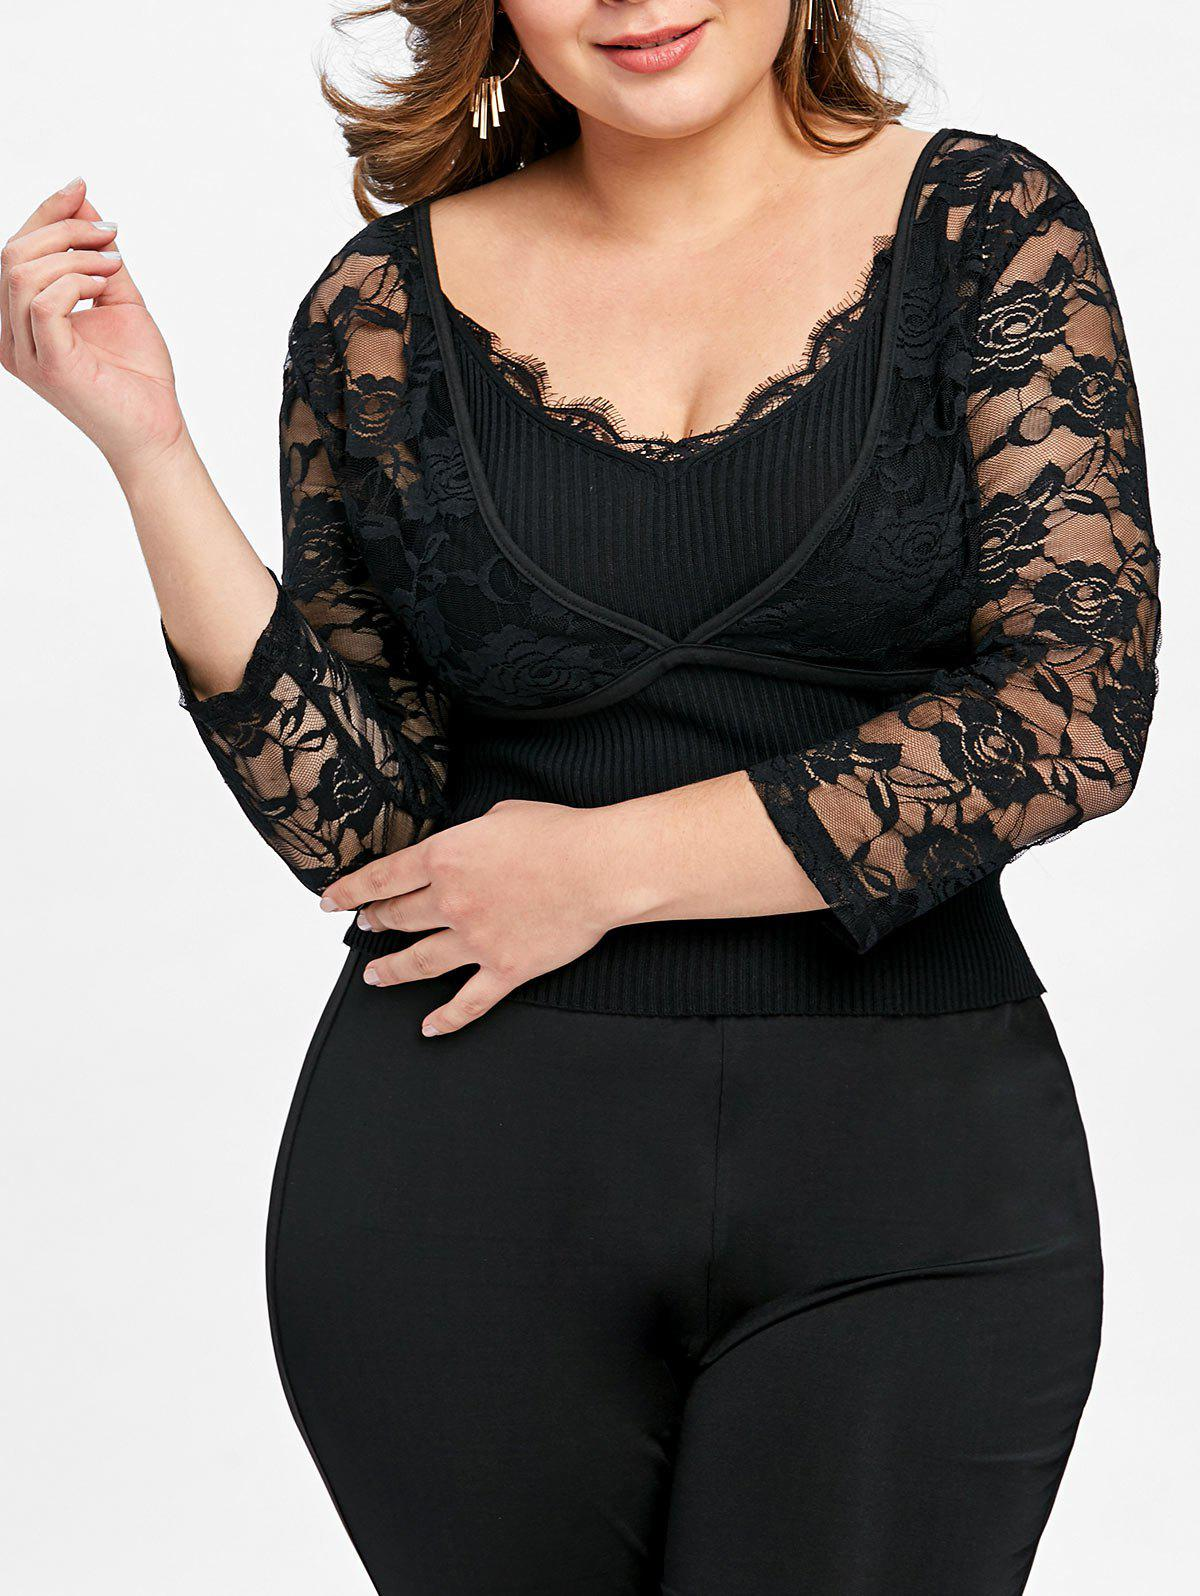 Plus Size Lace Sheer Crop Top toyo observe g3 ice 175 65 r15 84t